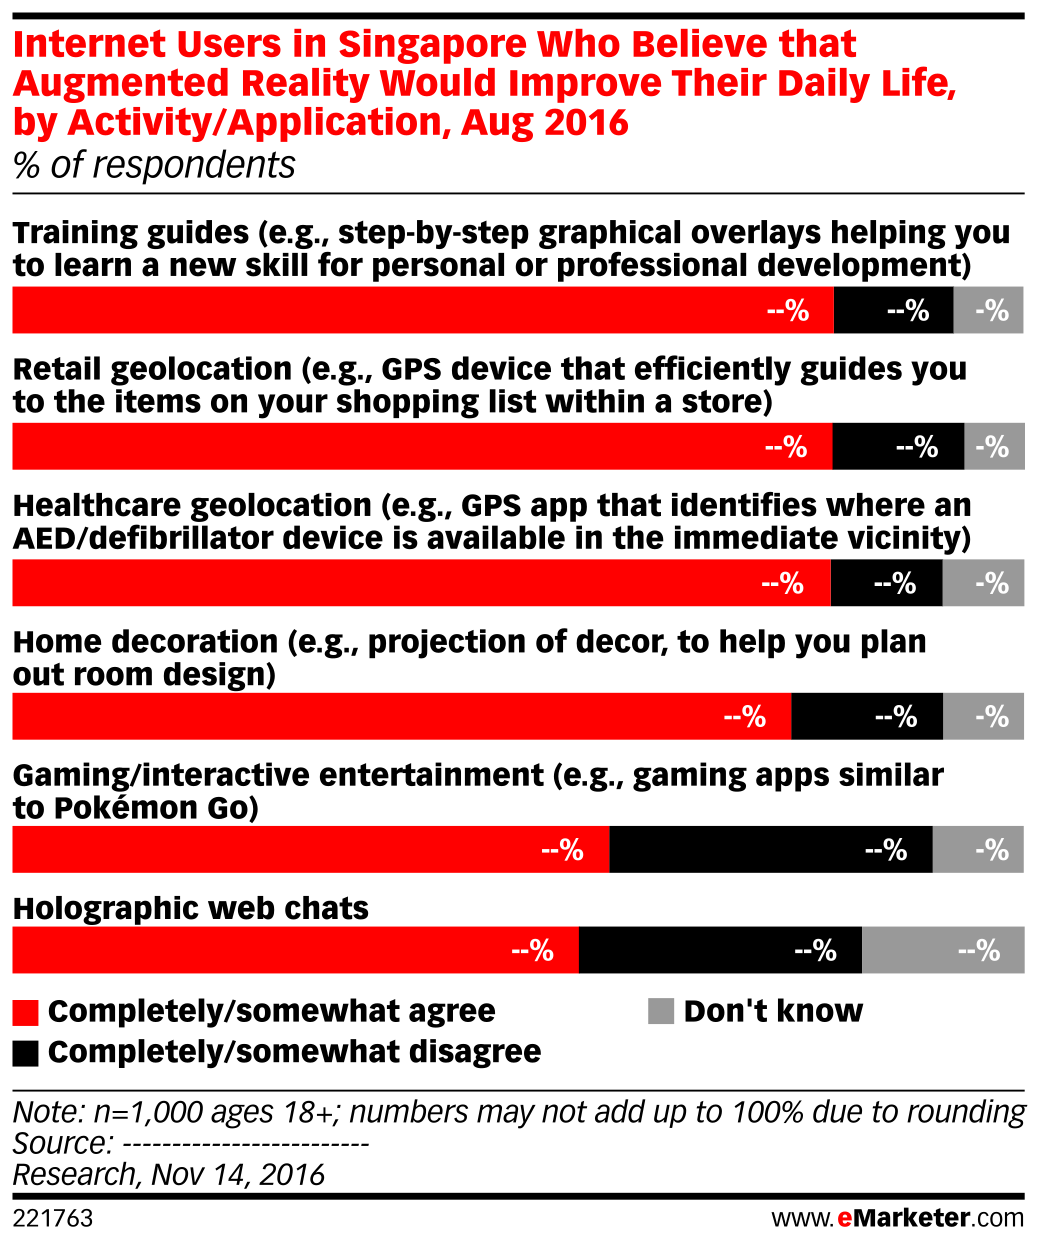 Internet Users in Singapore Who Believe that Augmented Reality Would Improve Their Daily Life, by Activity/Application, Aug 2016 (% of respondents)